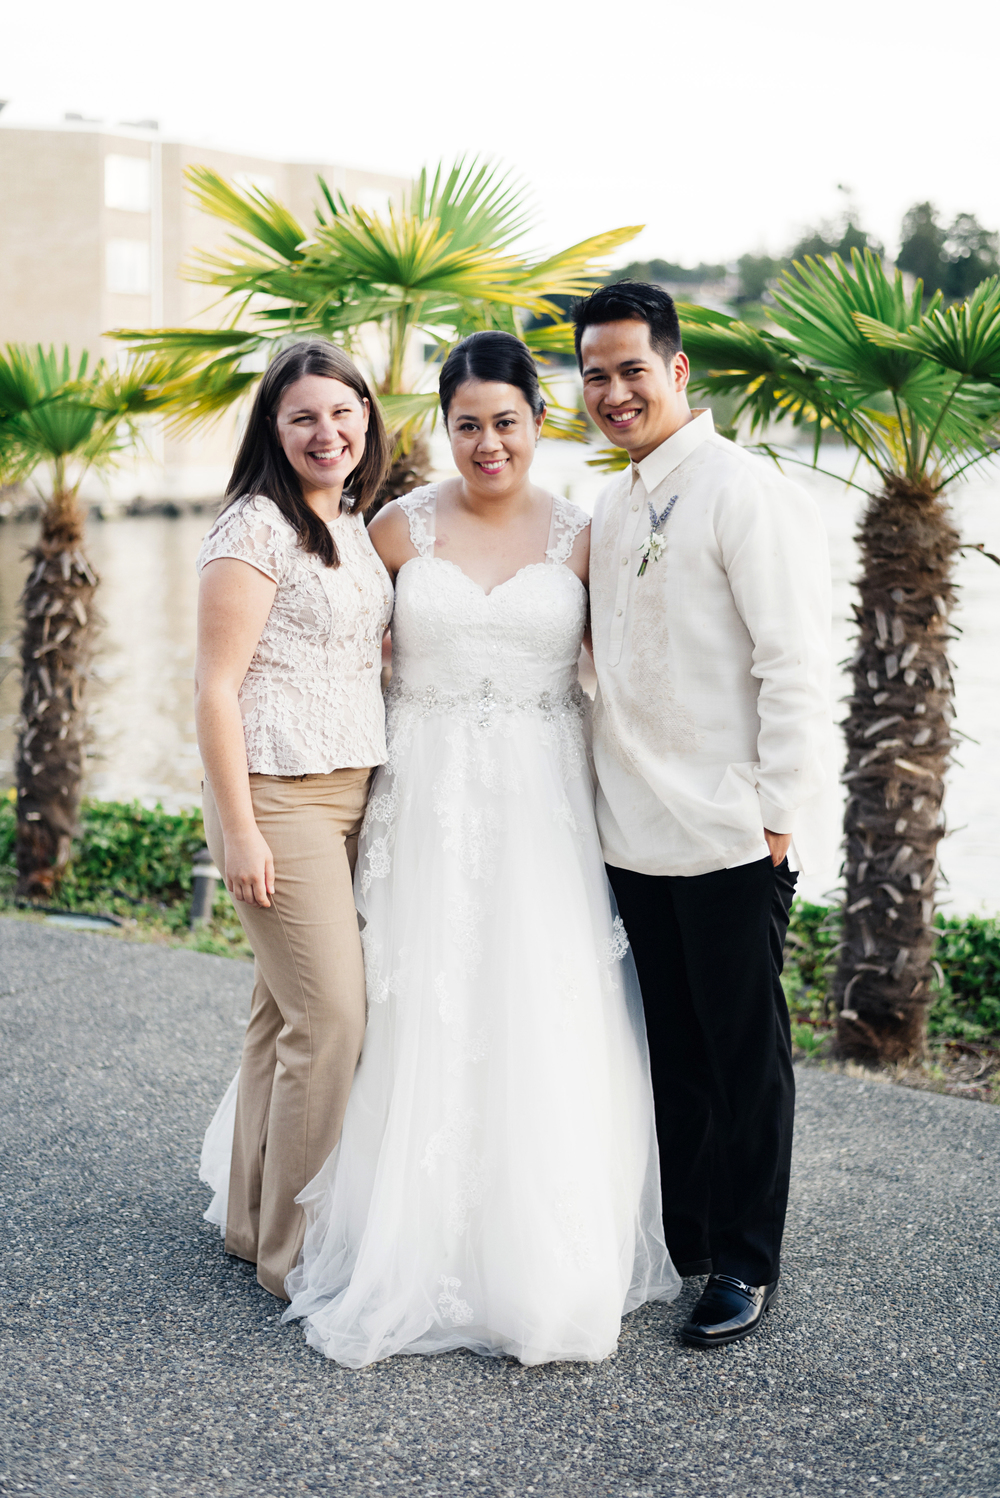 Bride and Groom with Wedding Planner | Joe and Patience Photography | Filipino Wedding Planner | Seattle Wedding Planner | Ballard Bay Club Wedding